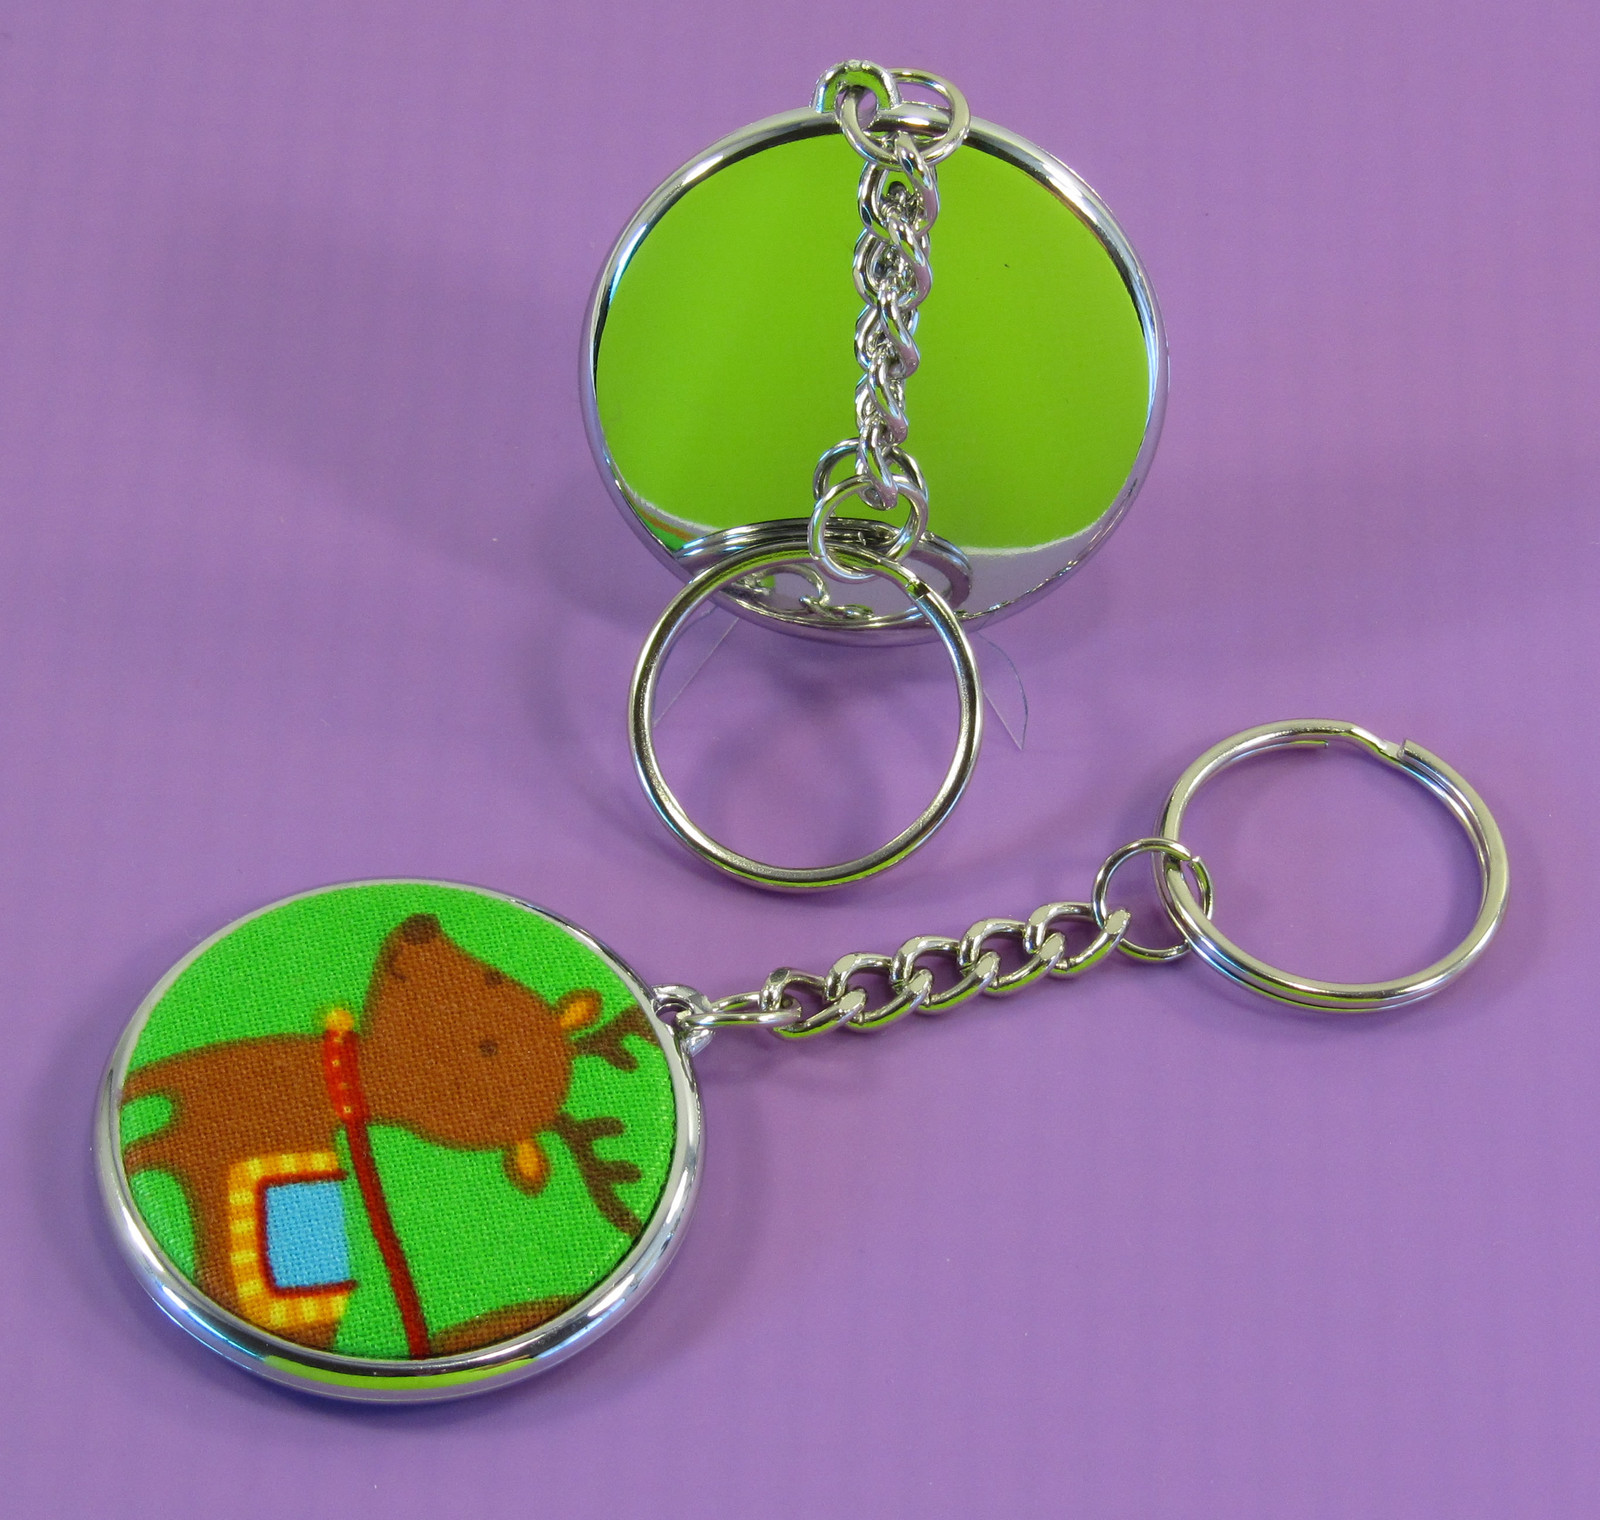 An elegant 37 mm badge key ring, electroplated, giving the key ring an elegant finish